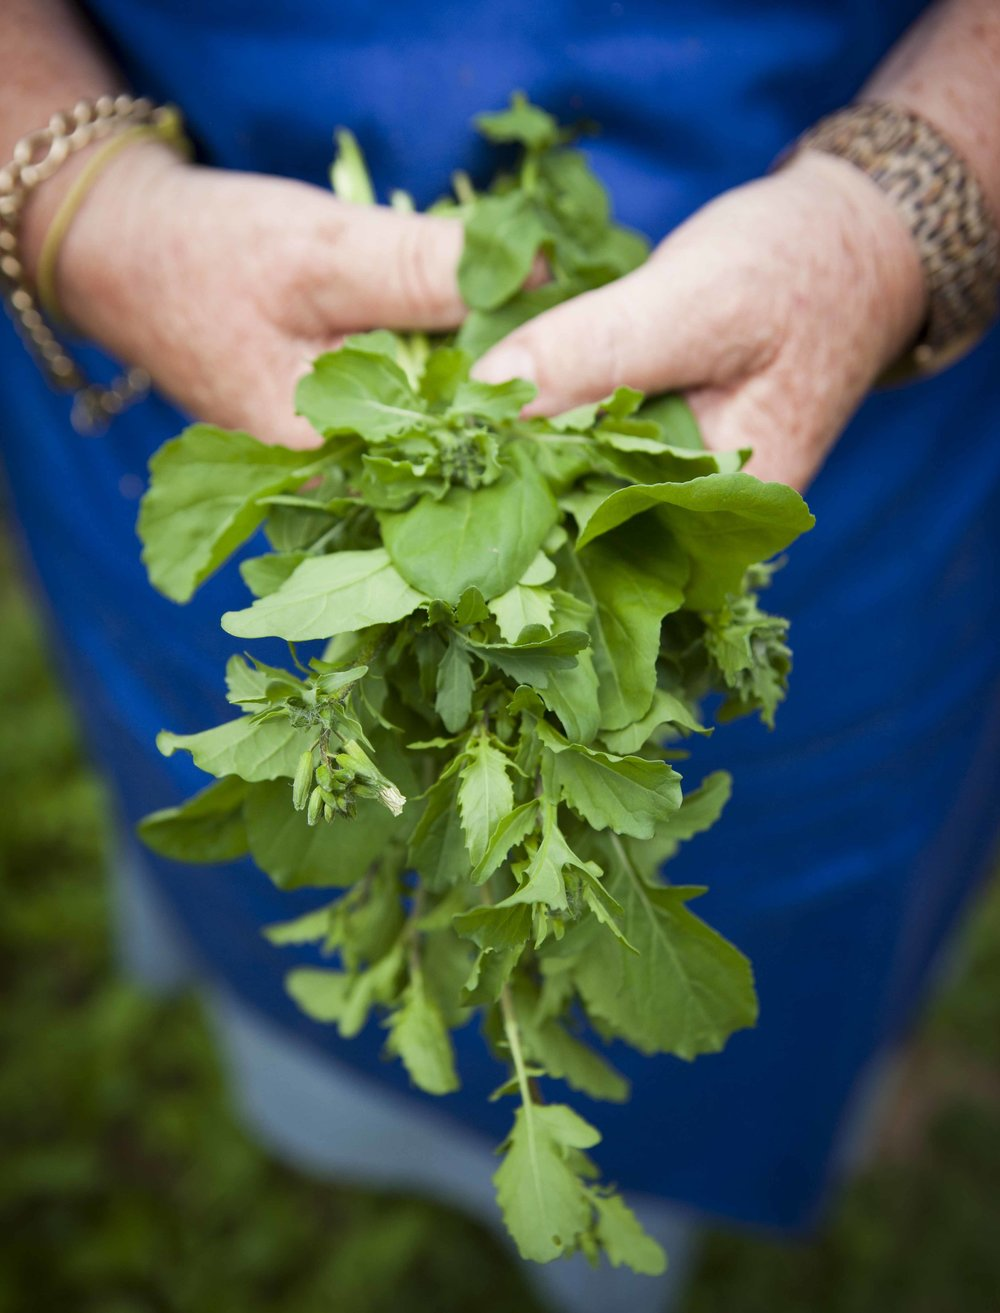 Capturing herbs during a food and travel photography workshop